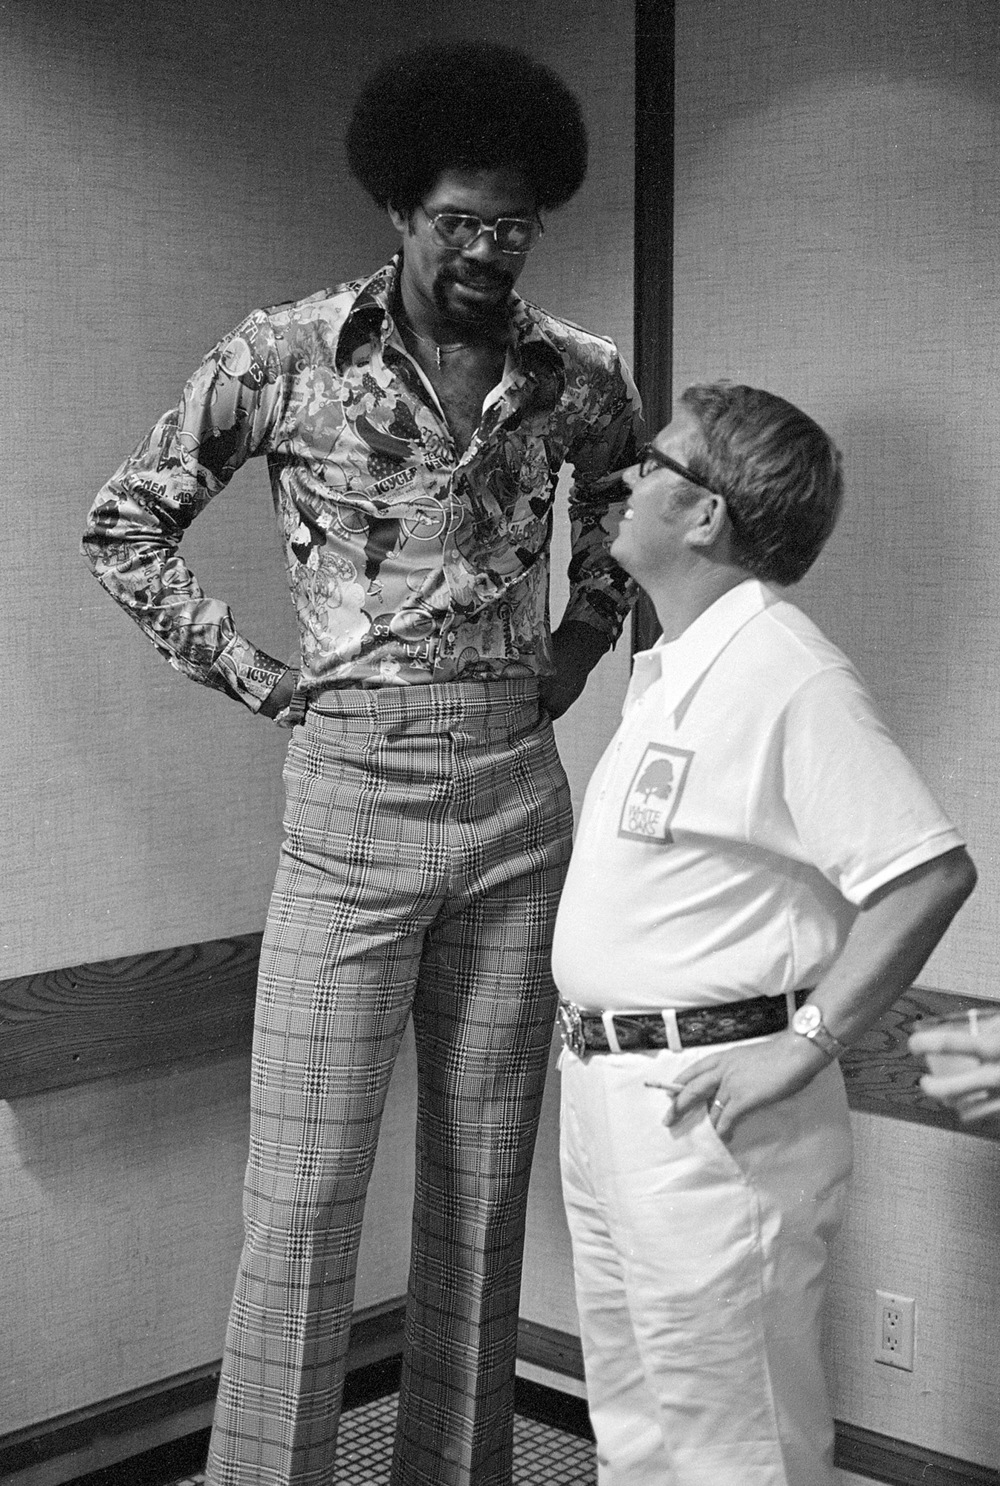 Billy Carter spoke with the Chicago Bulls' Artis Gilmore at a press conference the night before the grand opening.